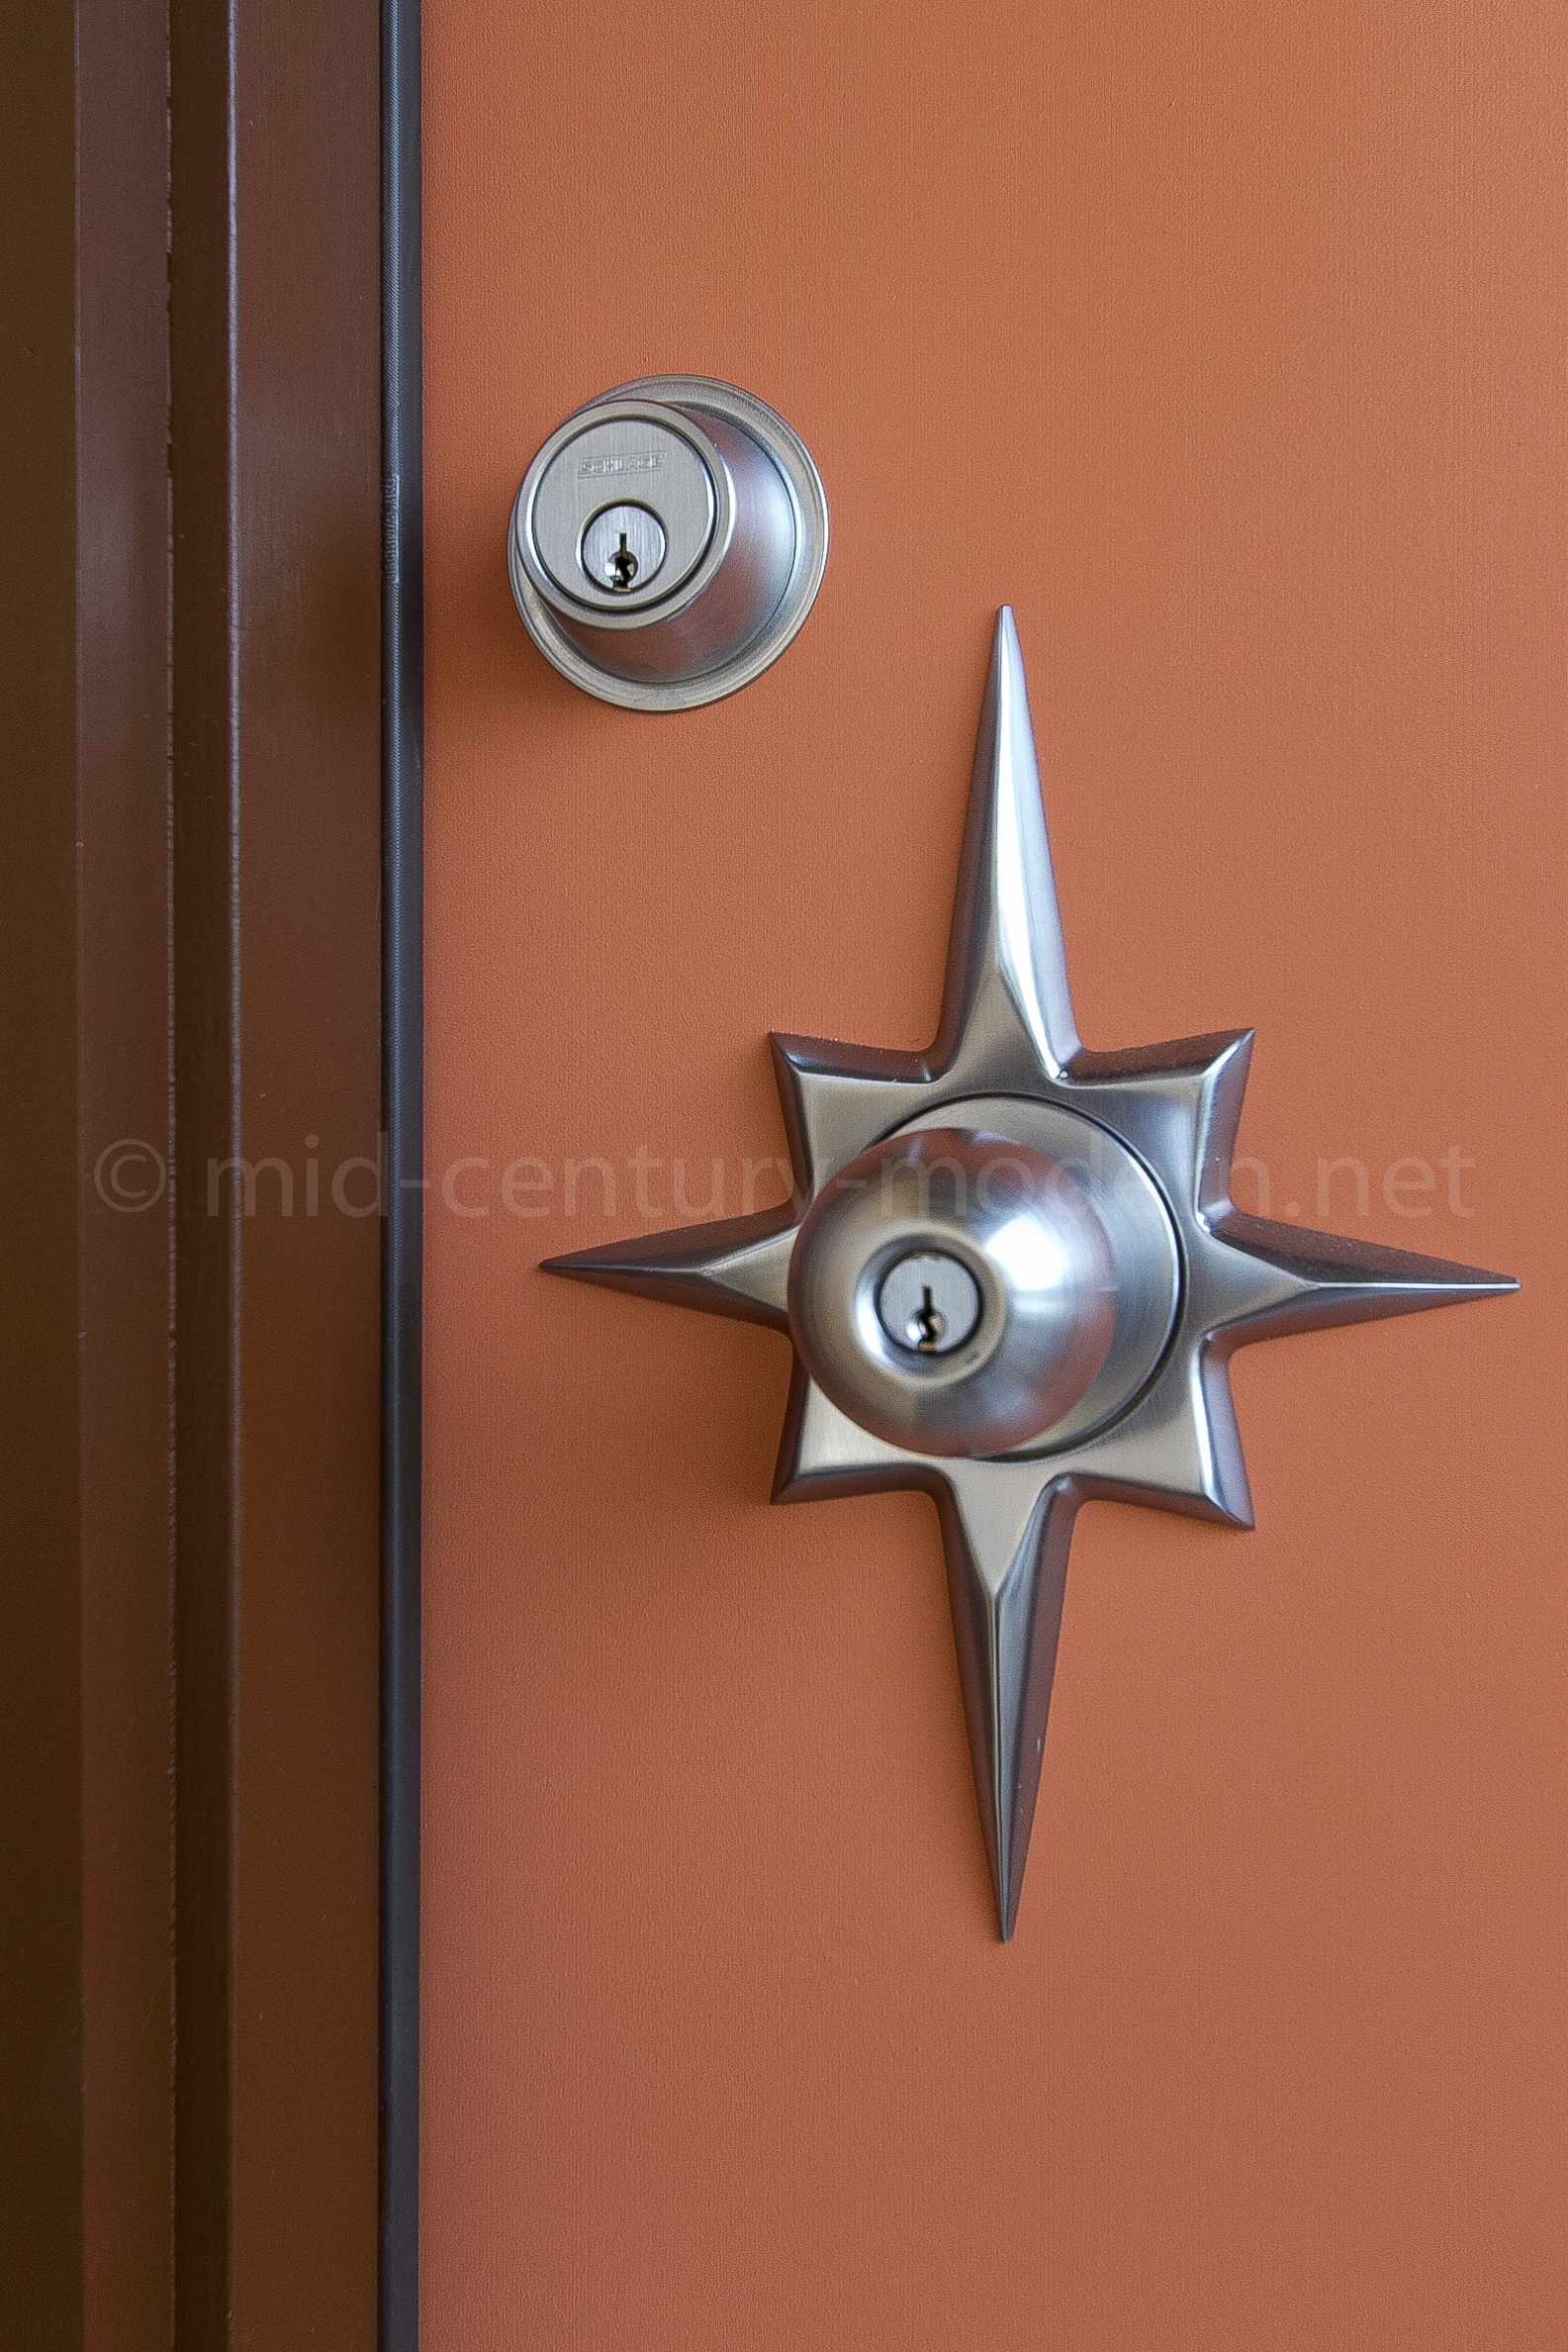 mid century modern door knobs photo - 5